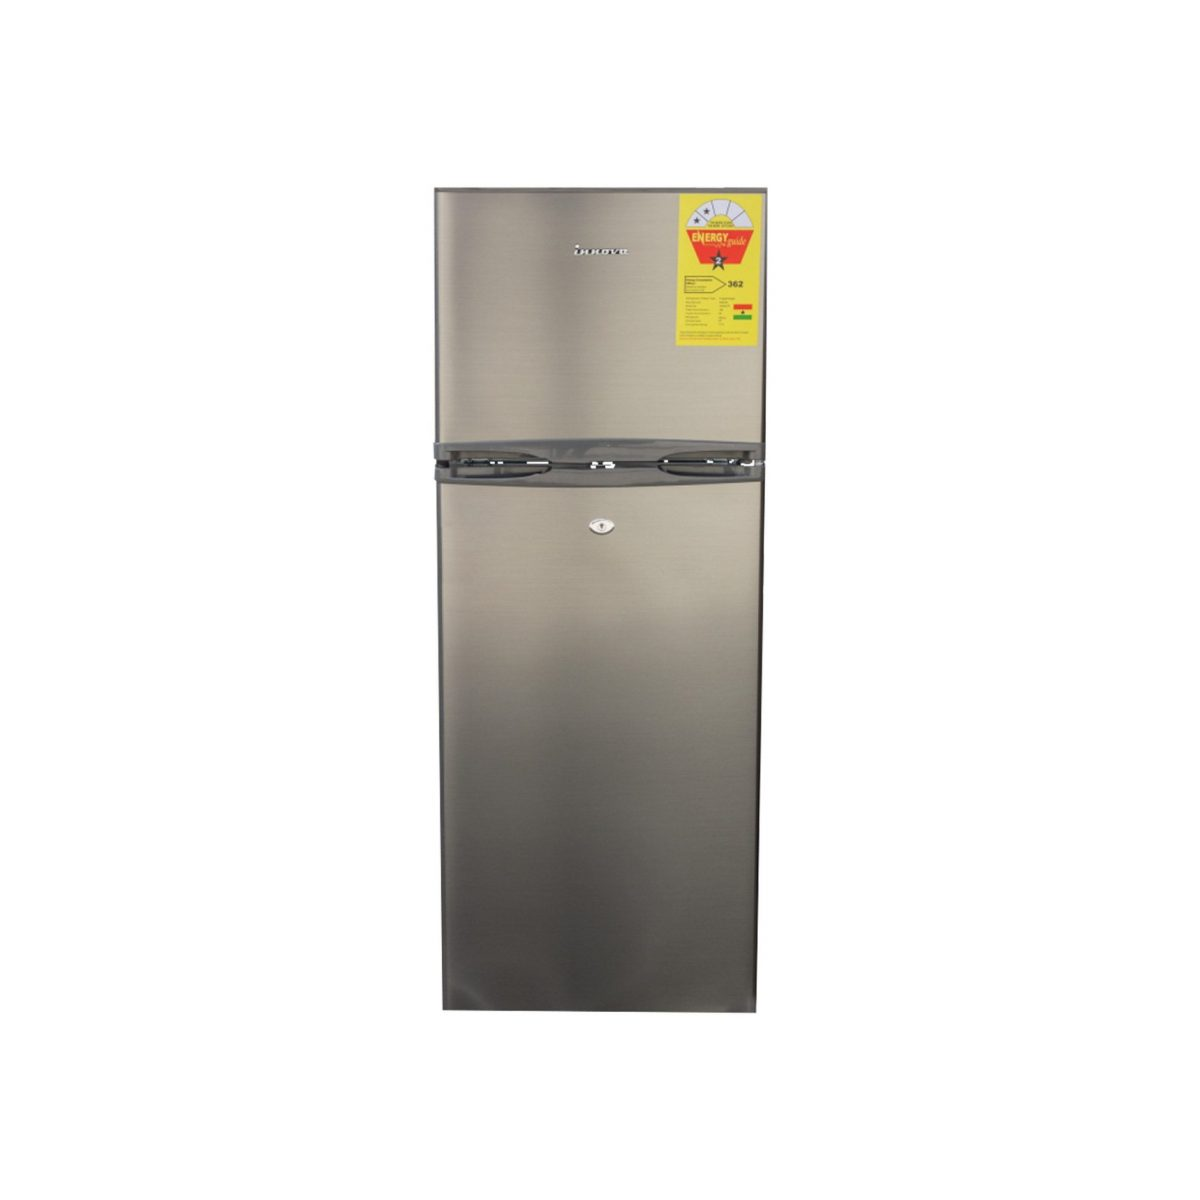 Innova fridge 117 Liter Top freezer Double door